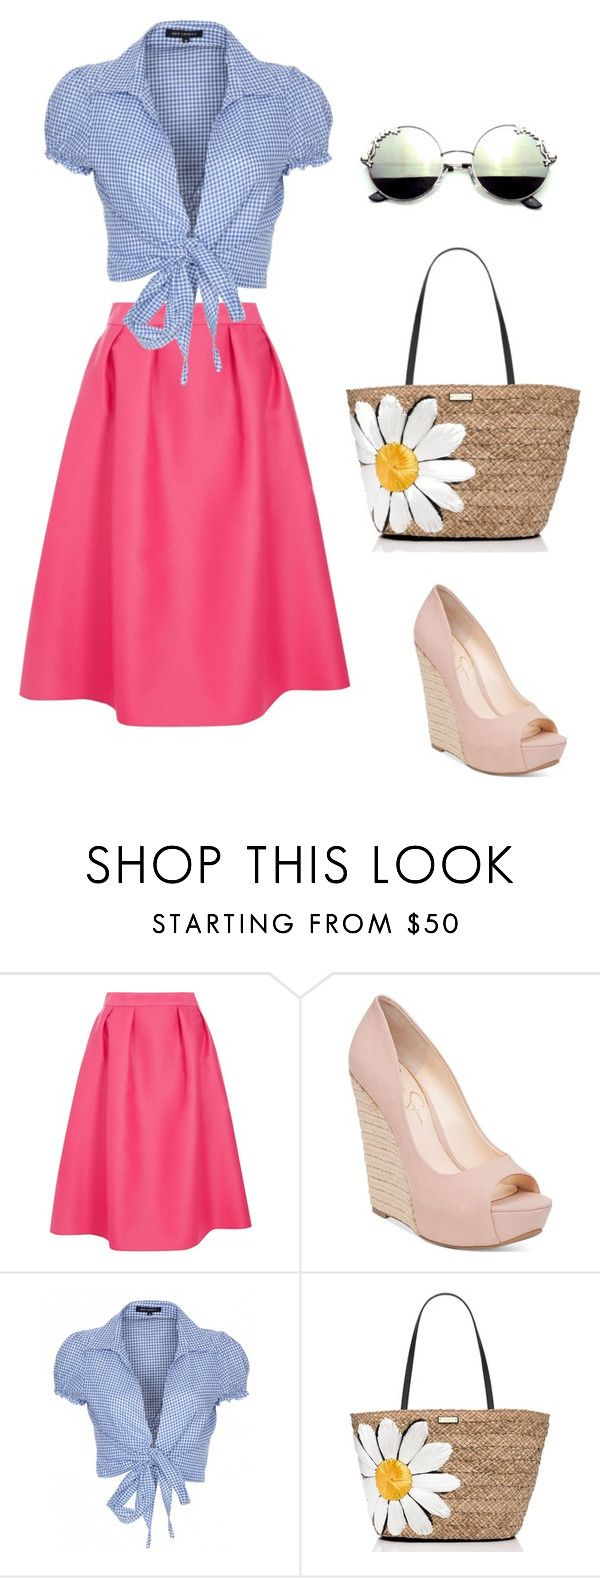 pink and blue by catarina-teixeira-de-queiros on Polyvore featuring QED London, Dorothy Perkins, Jessica Simpson and Kate Spade